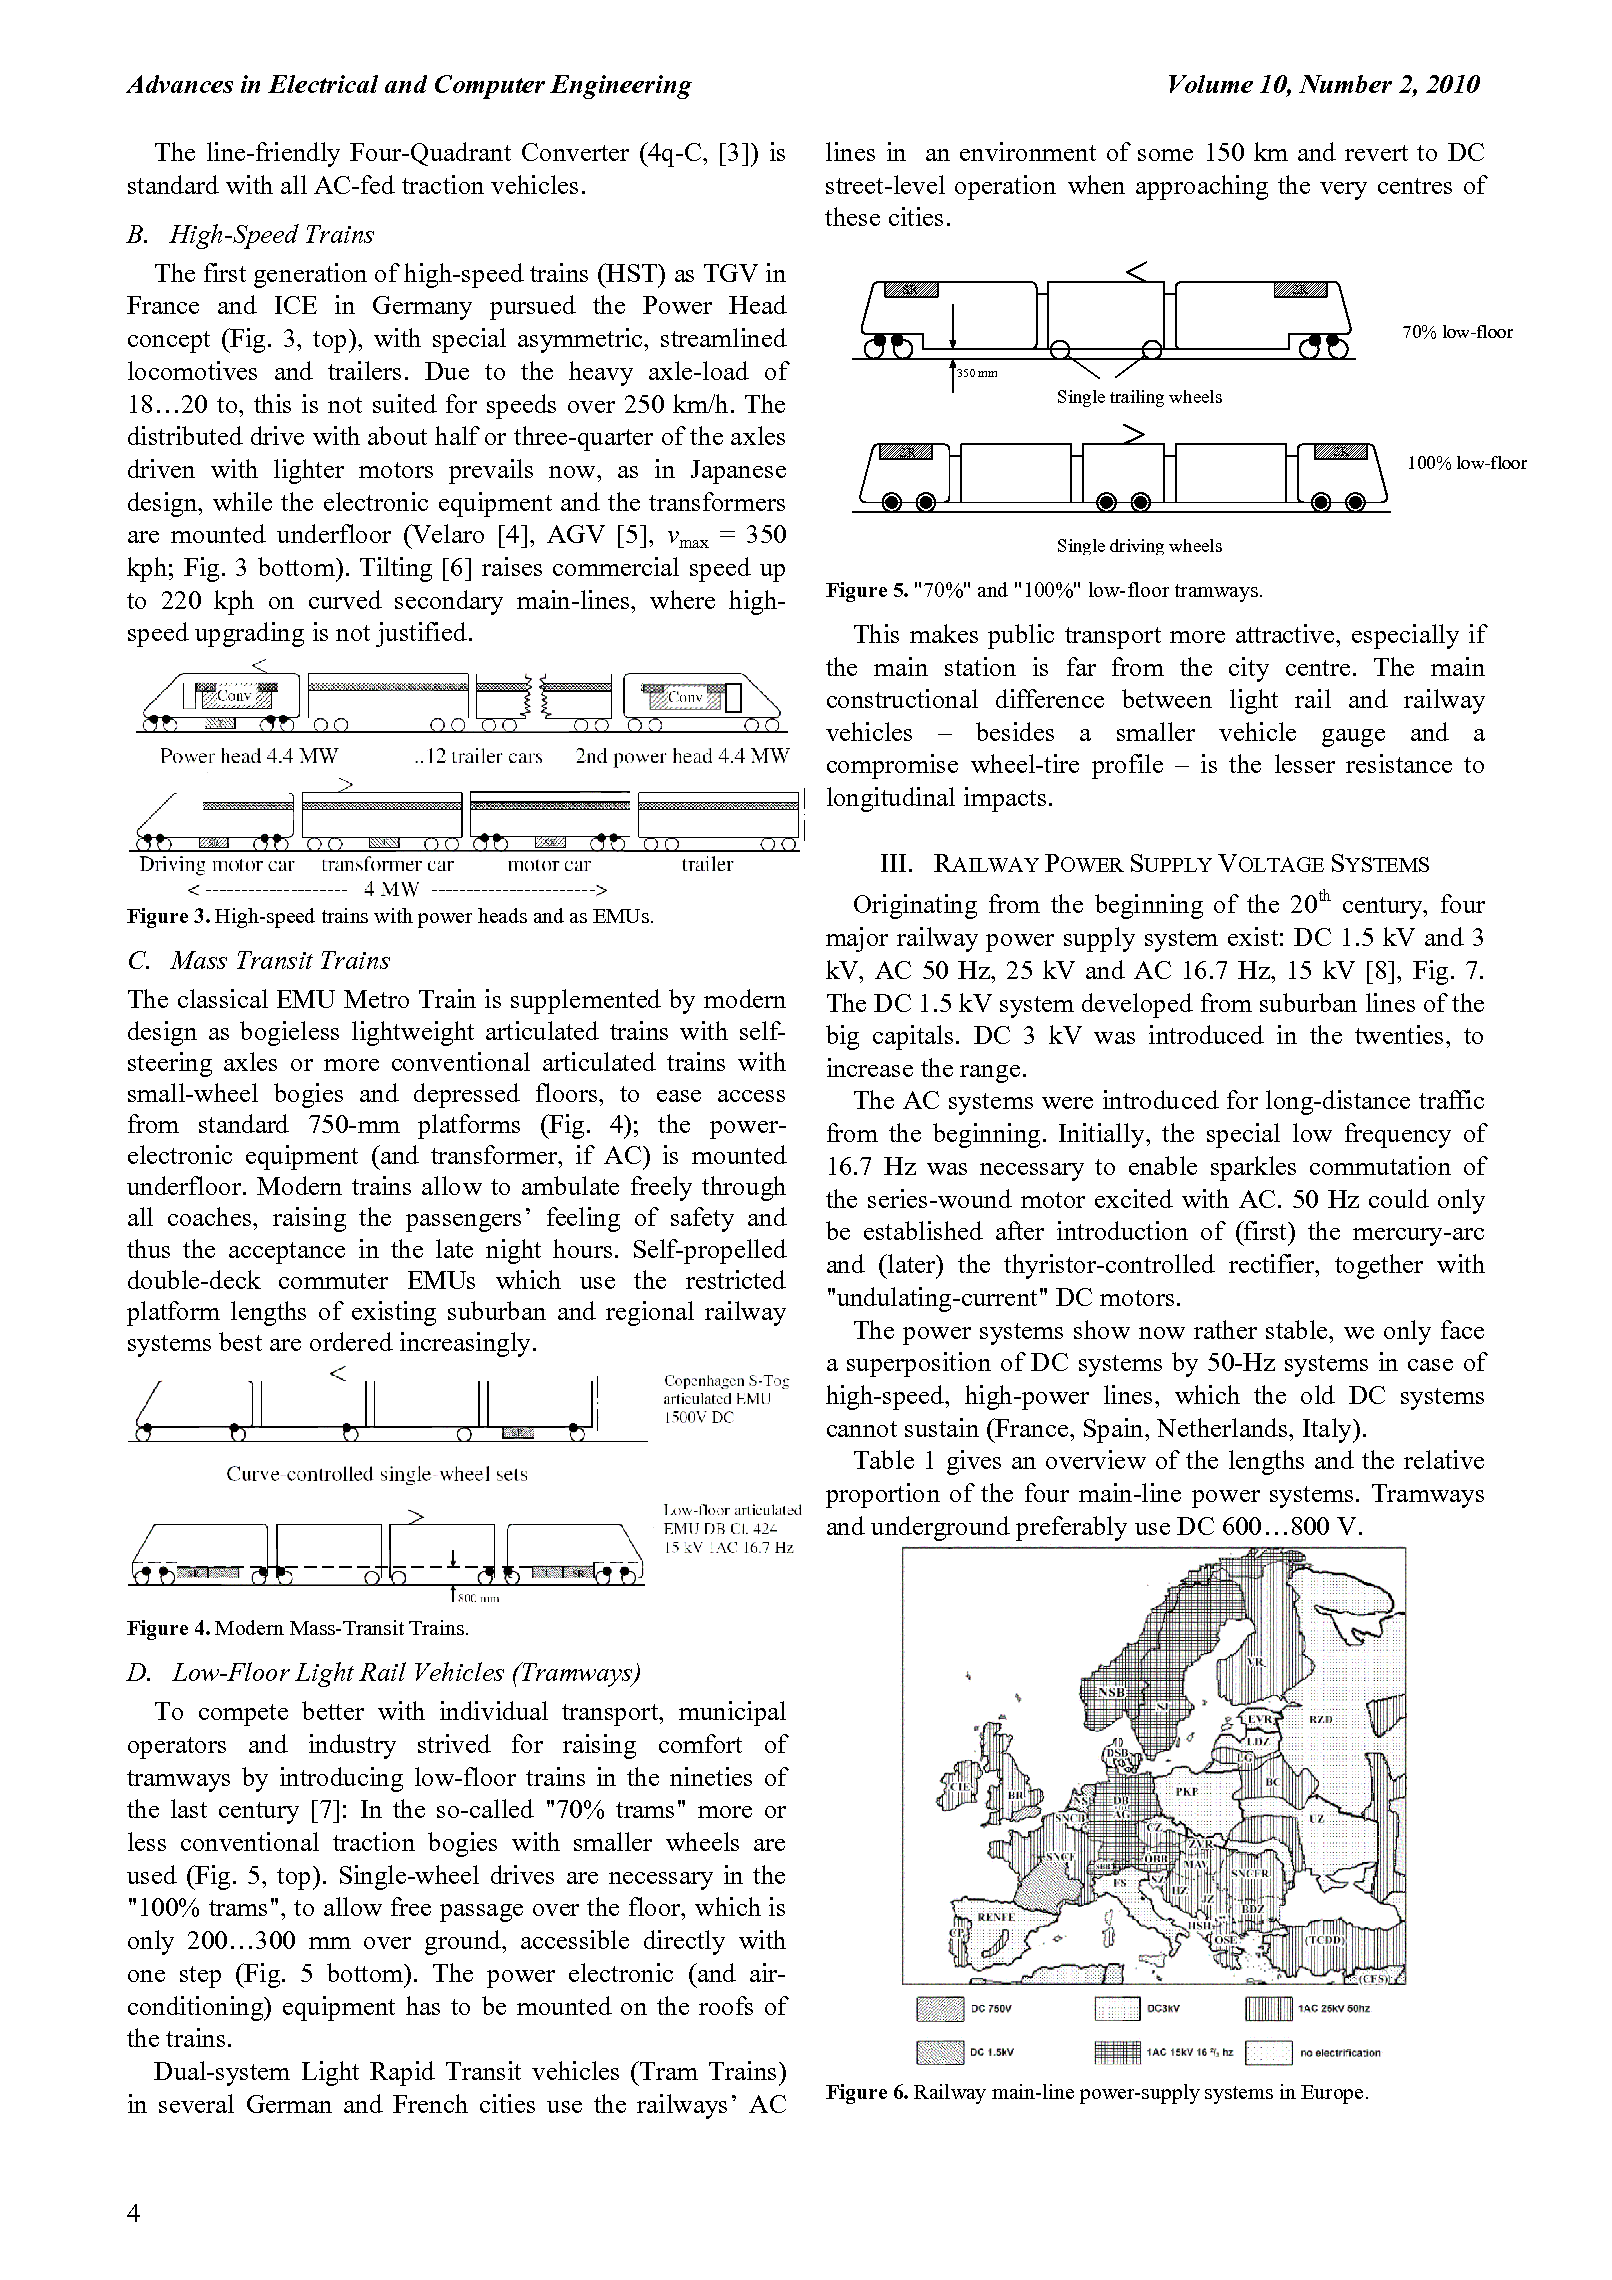 PDF Quickview for paper with DOI:10.4316/AECE.2010.02001